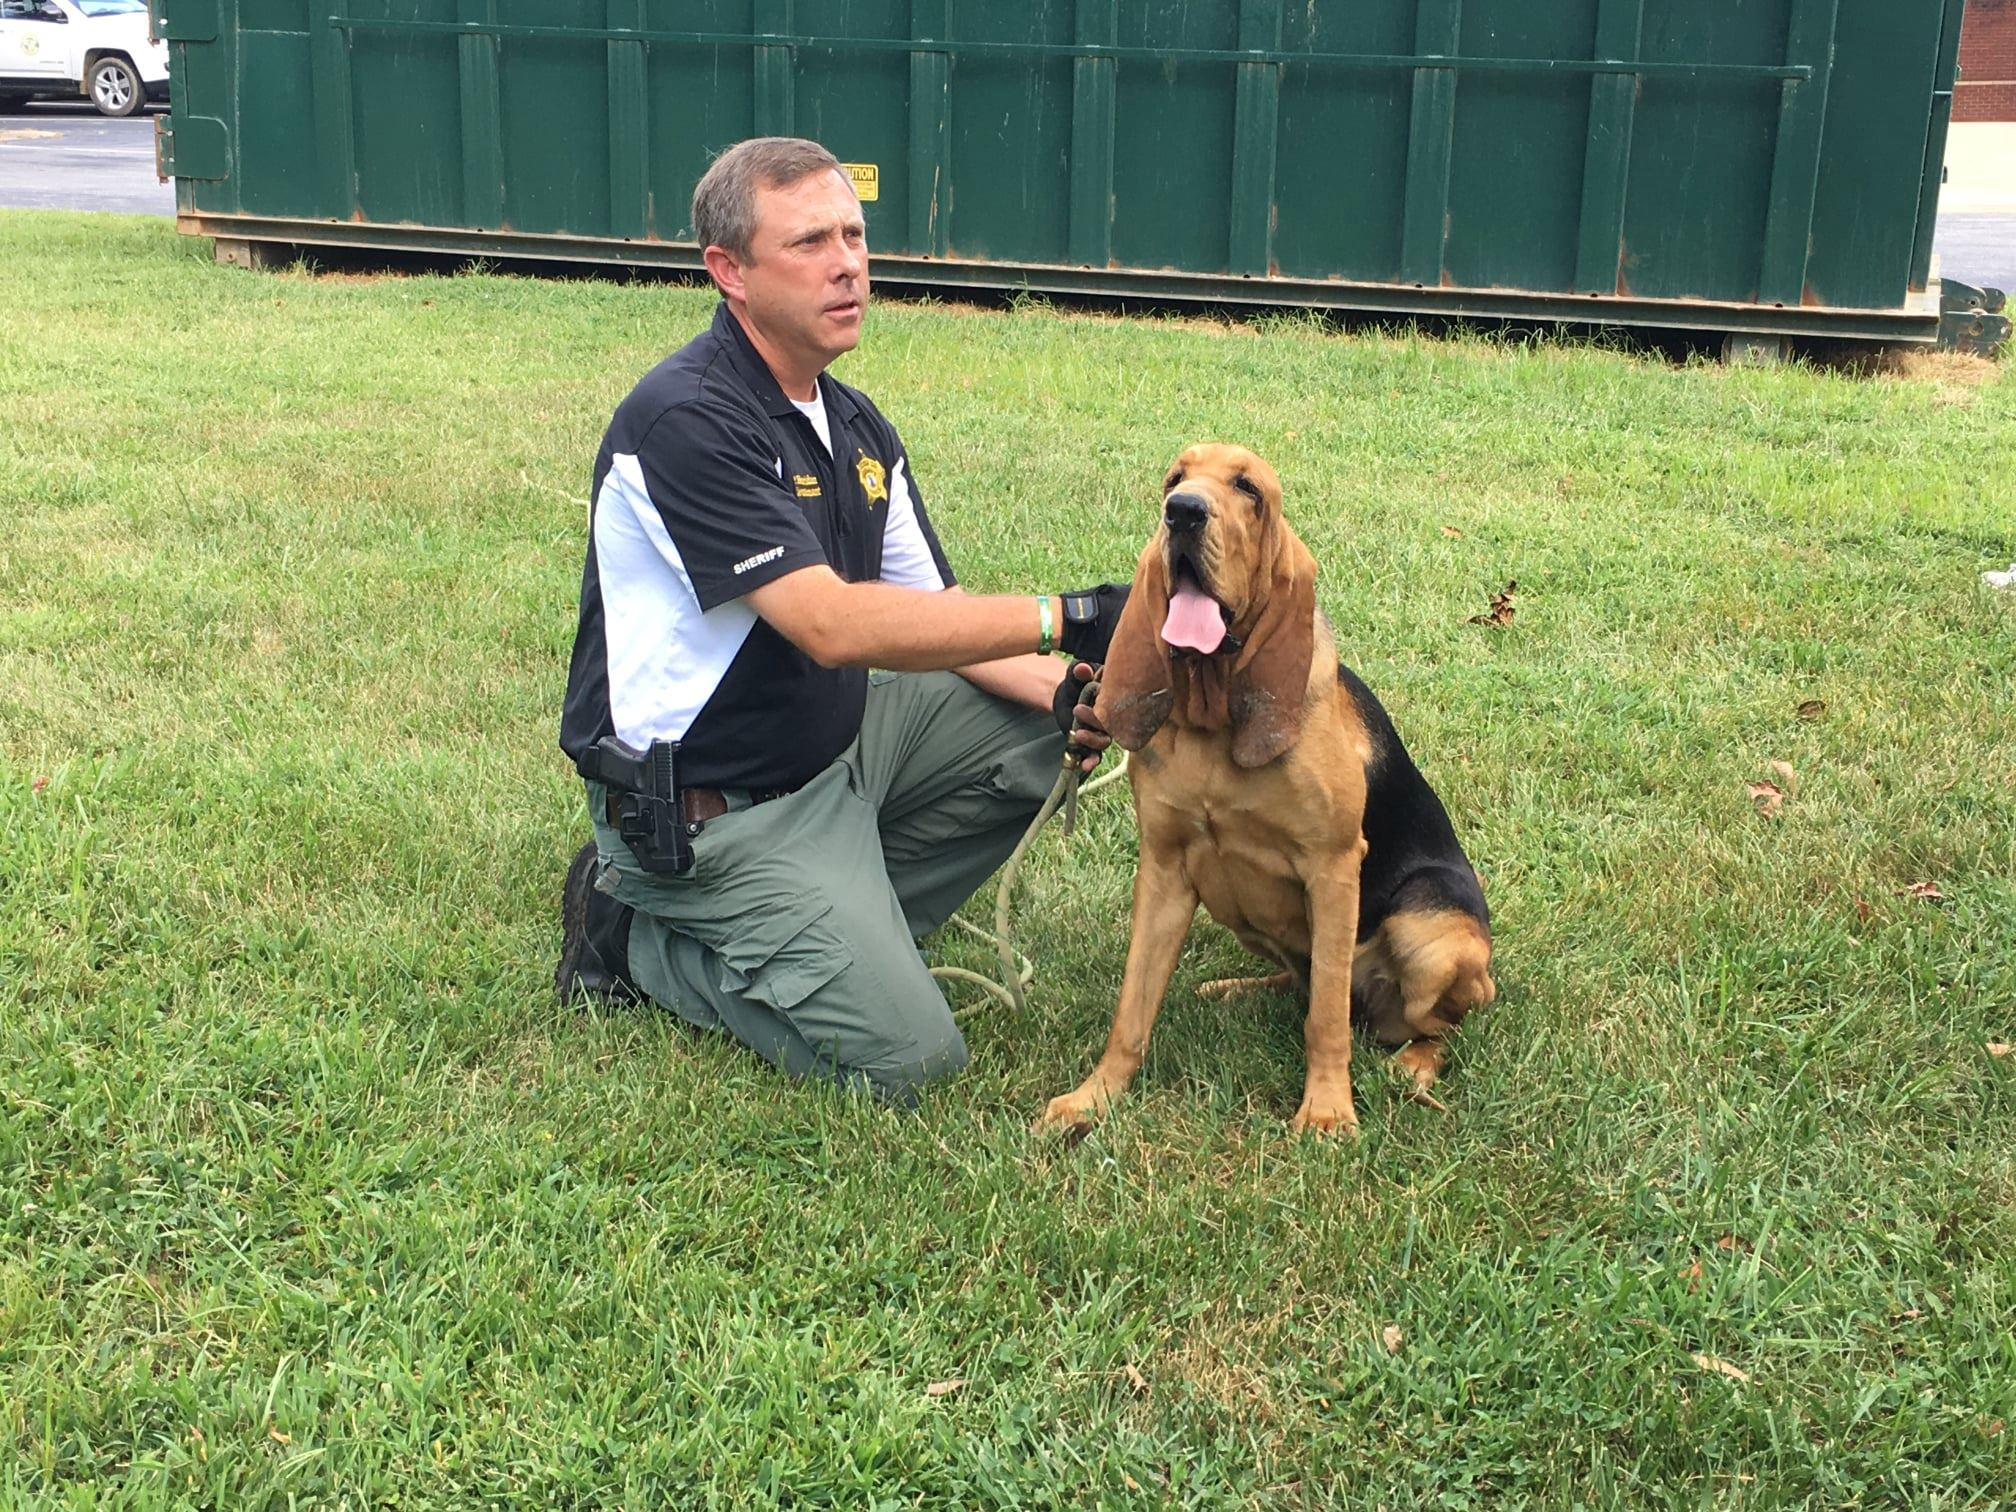 Lt Sheridan & K9 Ally During Citizens' Law Enforcement Academy